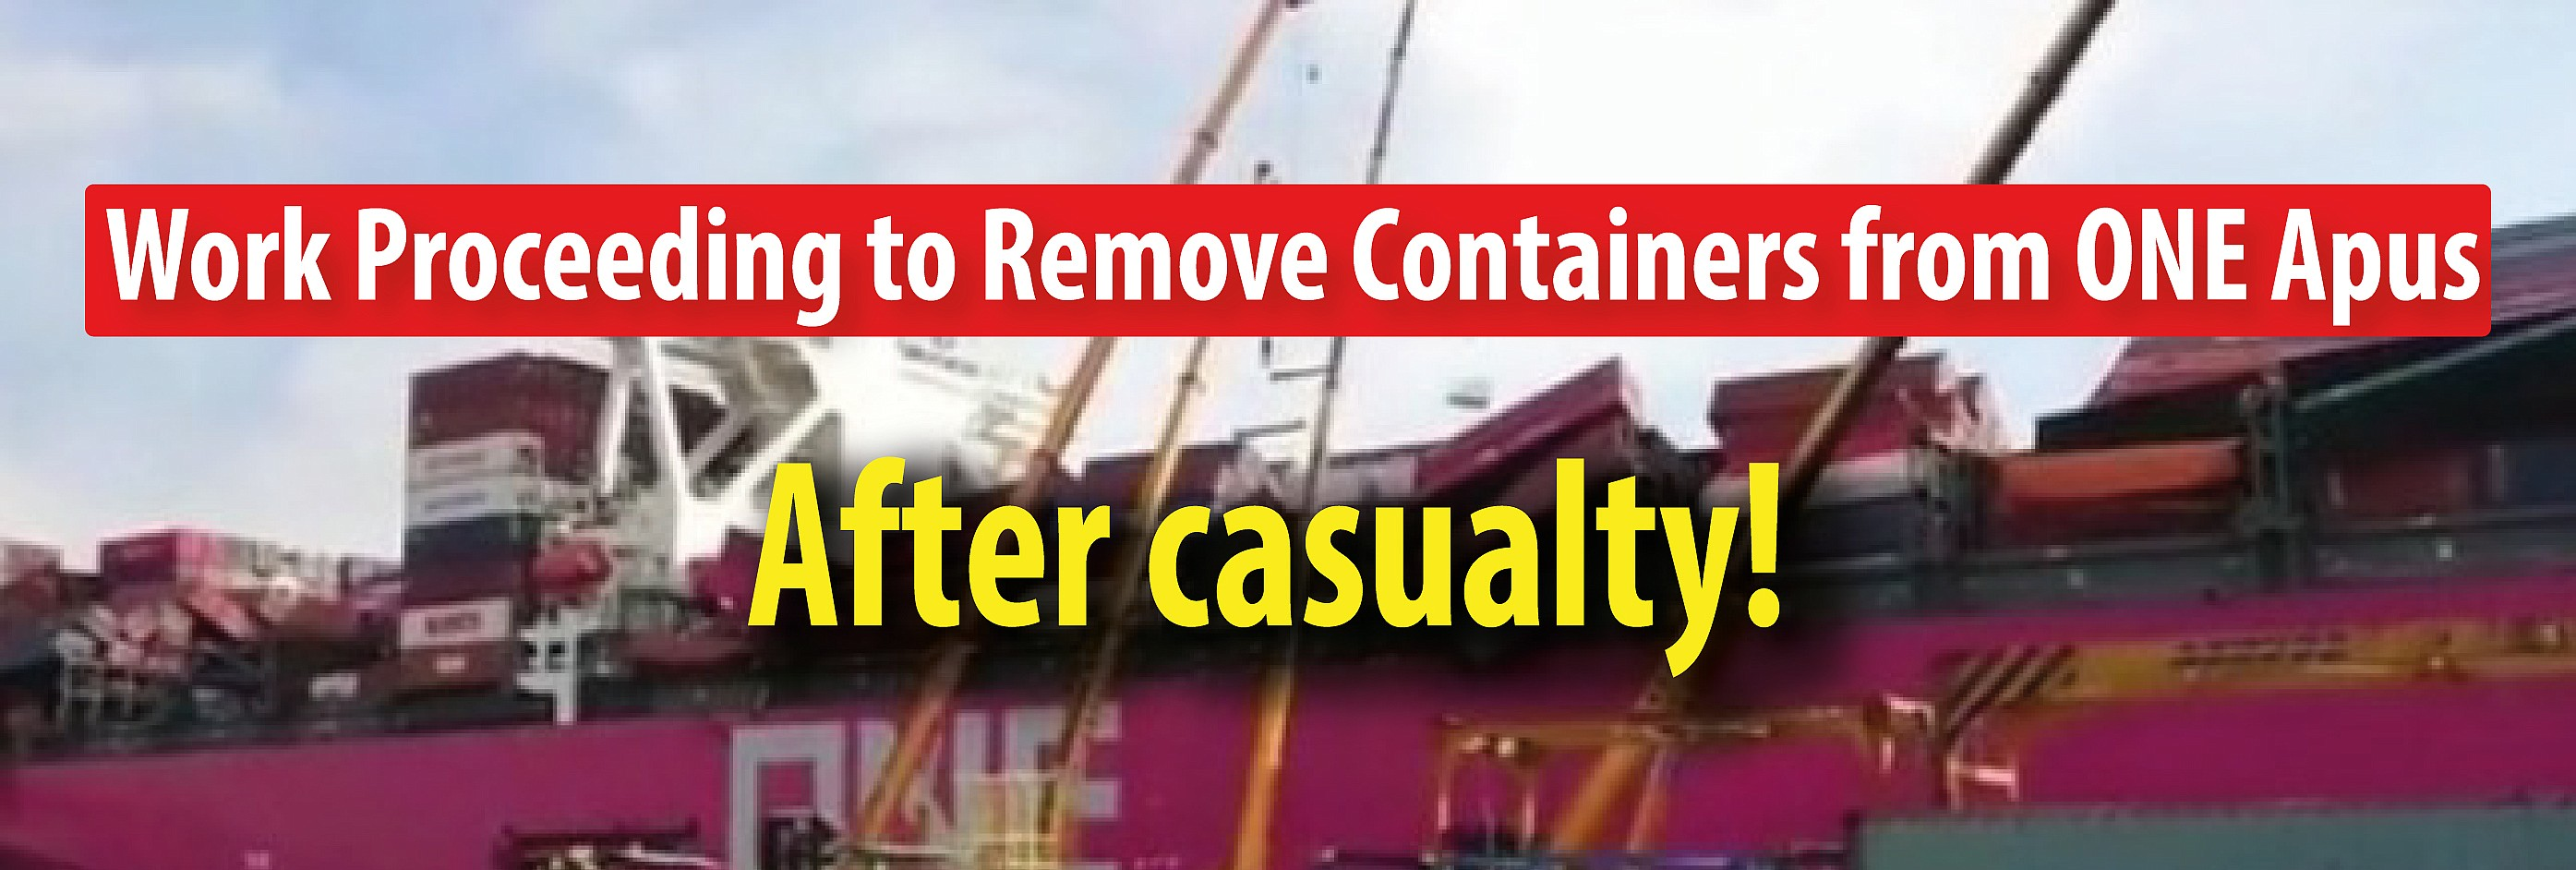 Work Proceeding to Remove Containers from ONE Apus After Casualty!